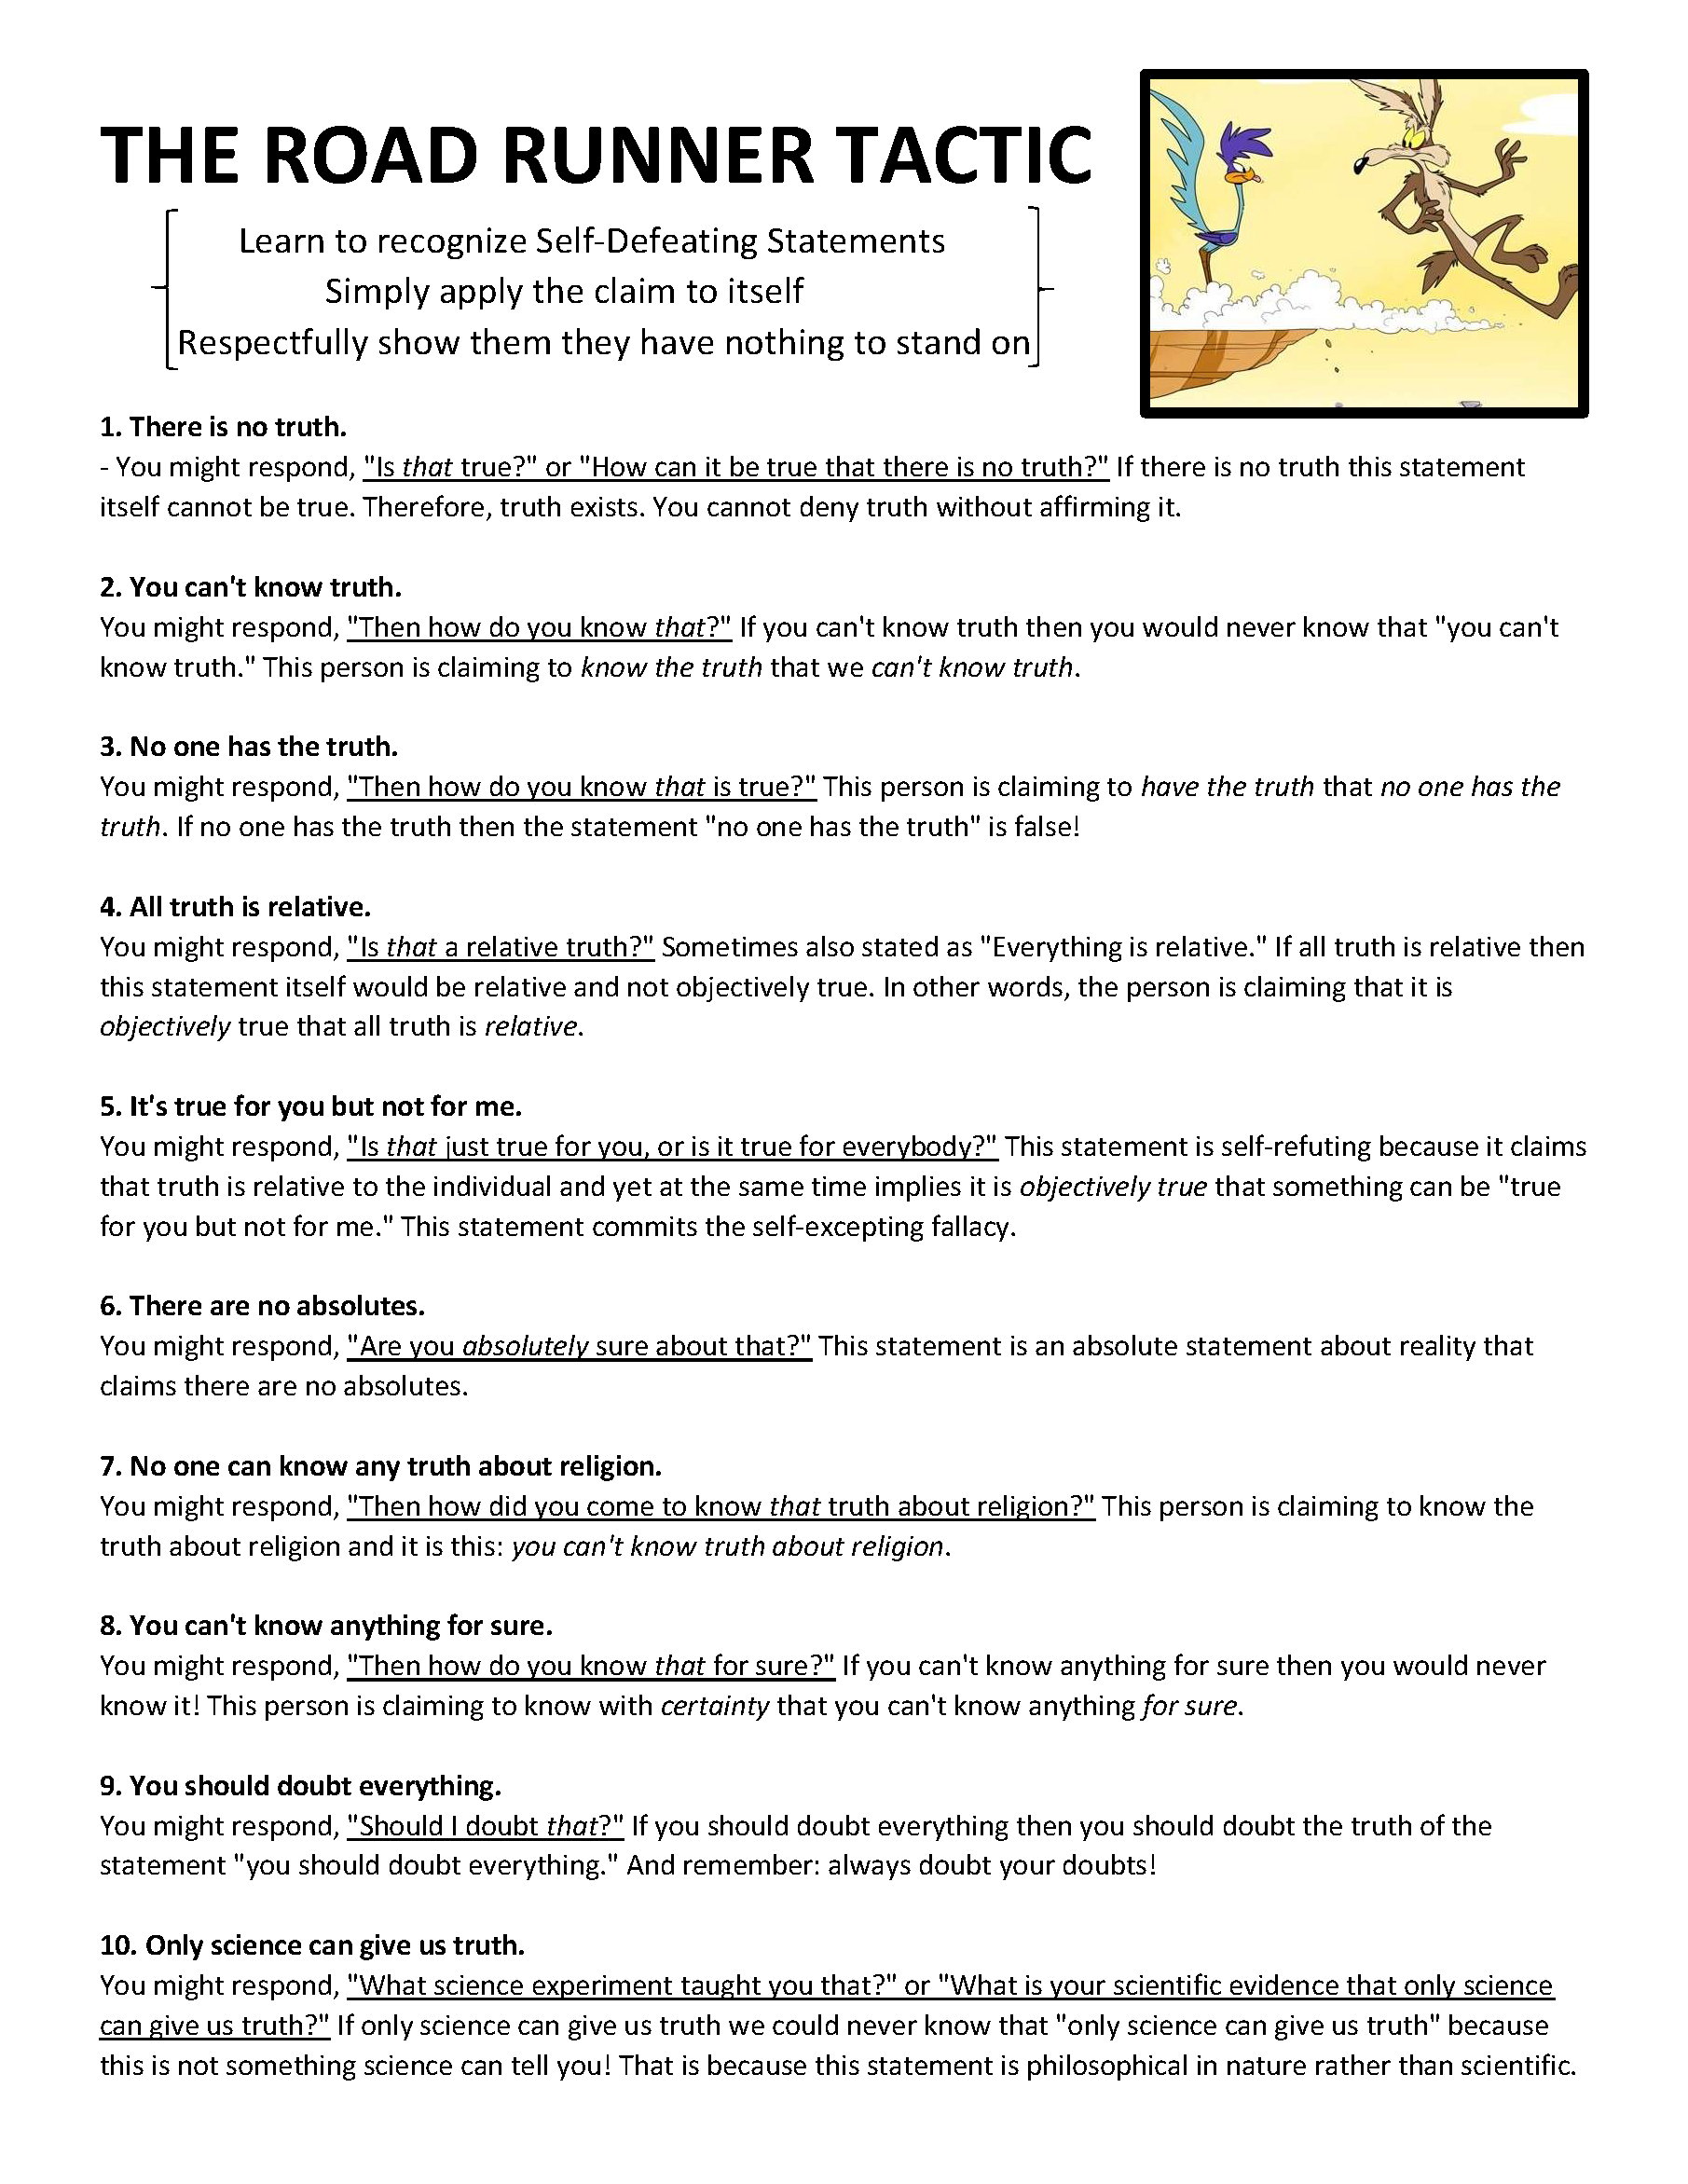 The Road Runner Tactic Handout